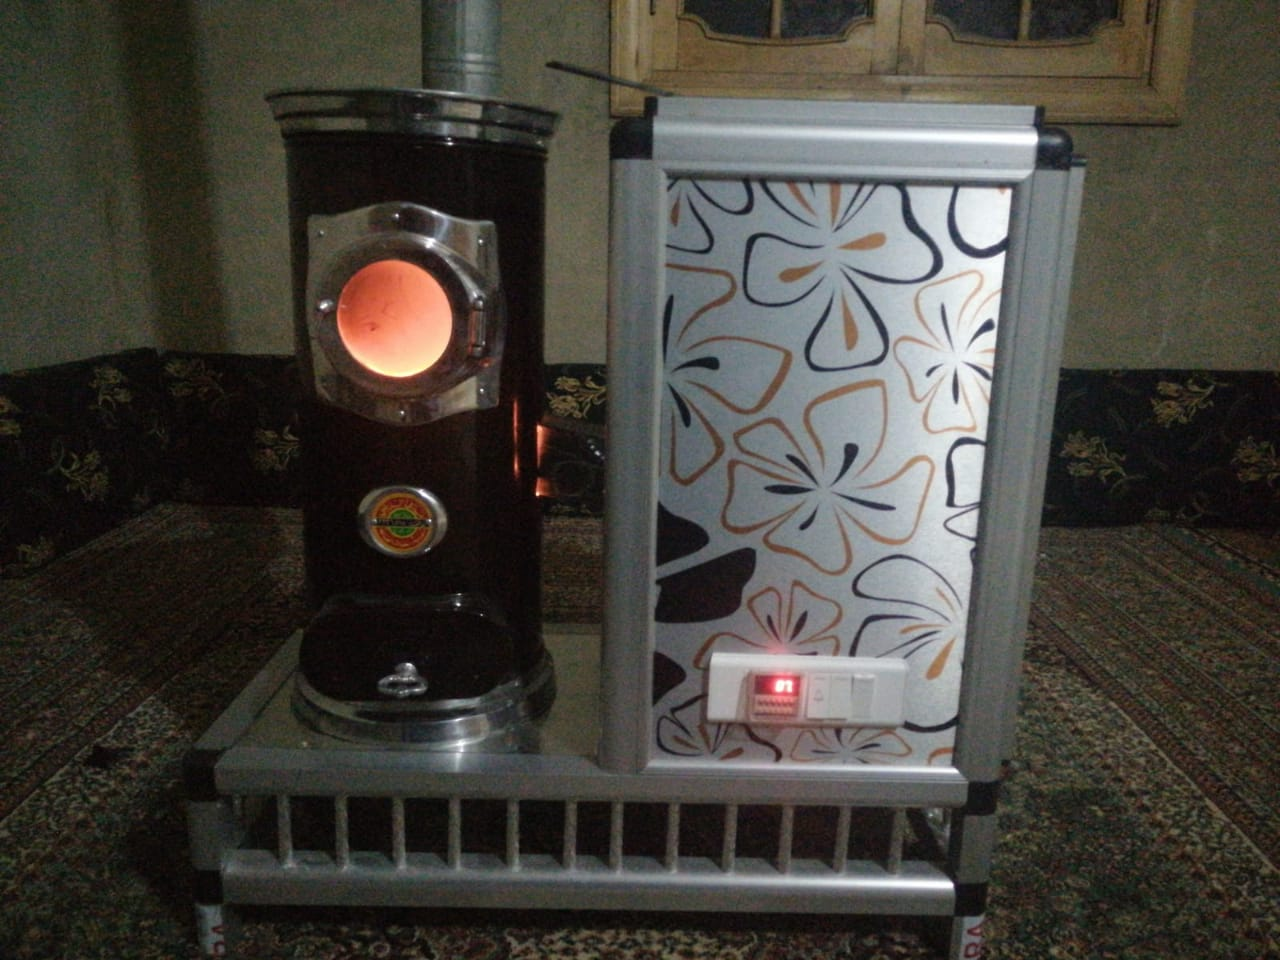 Hussein Ahmed keeps his home warm by burning pistachio shells in this specialized oven (MEE/Hussein Ahmed)